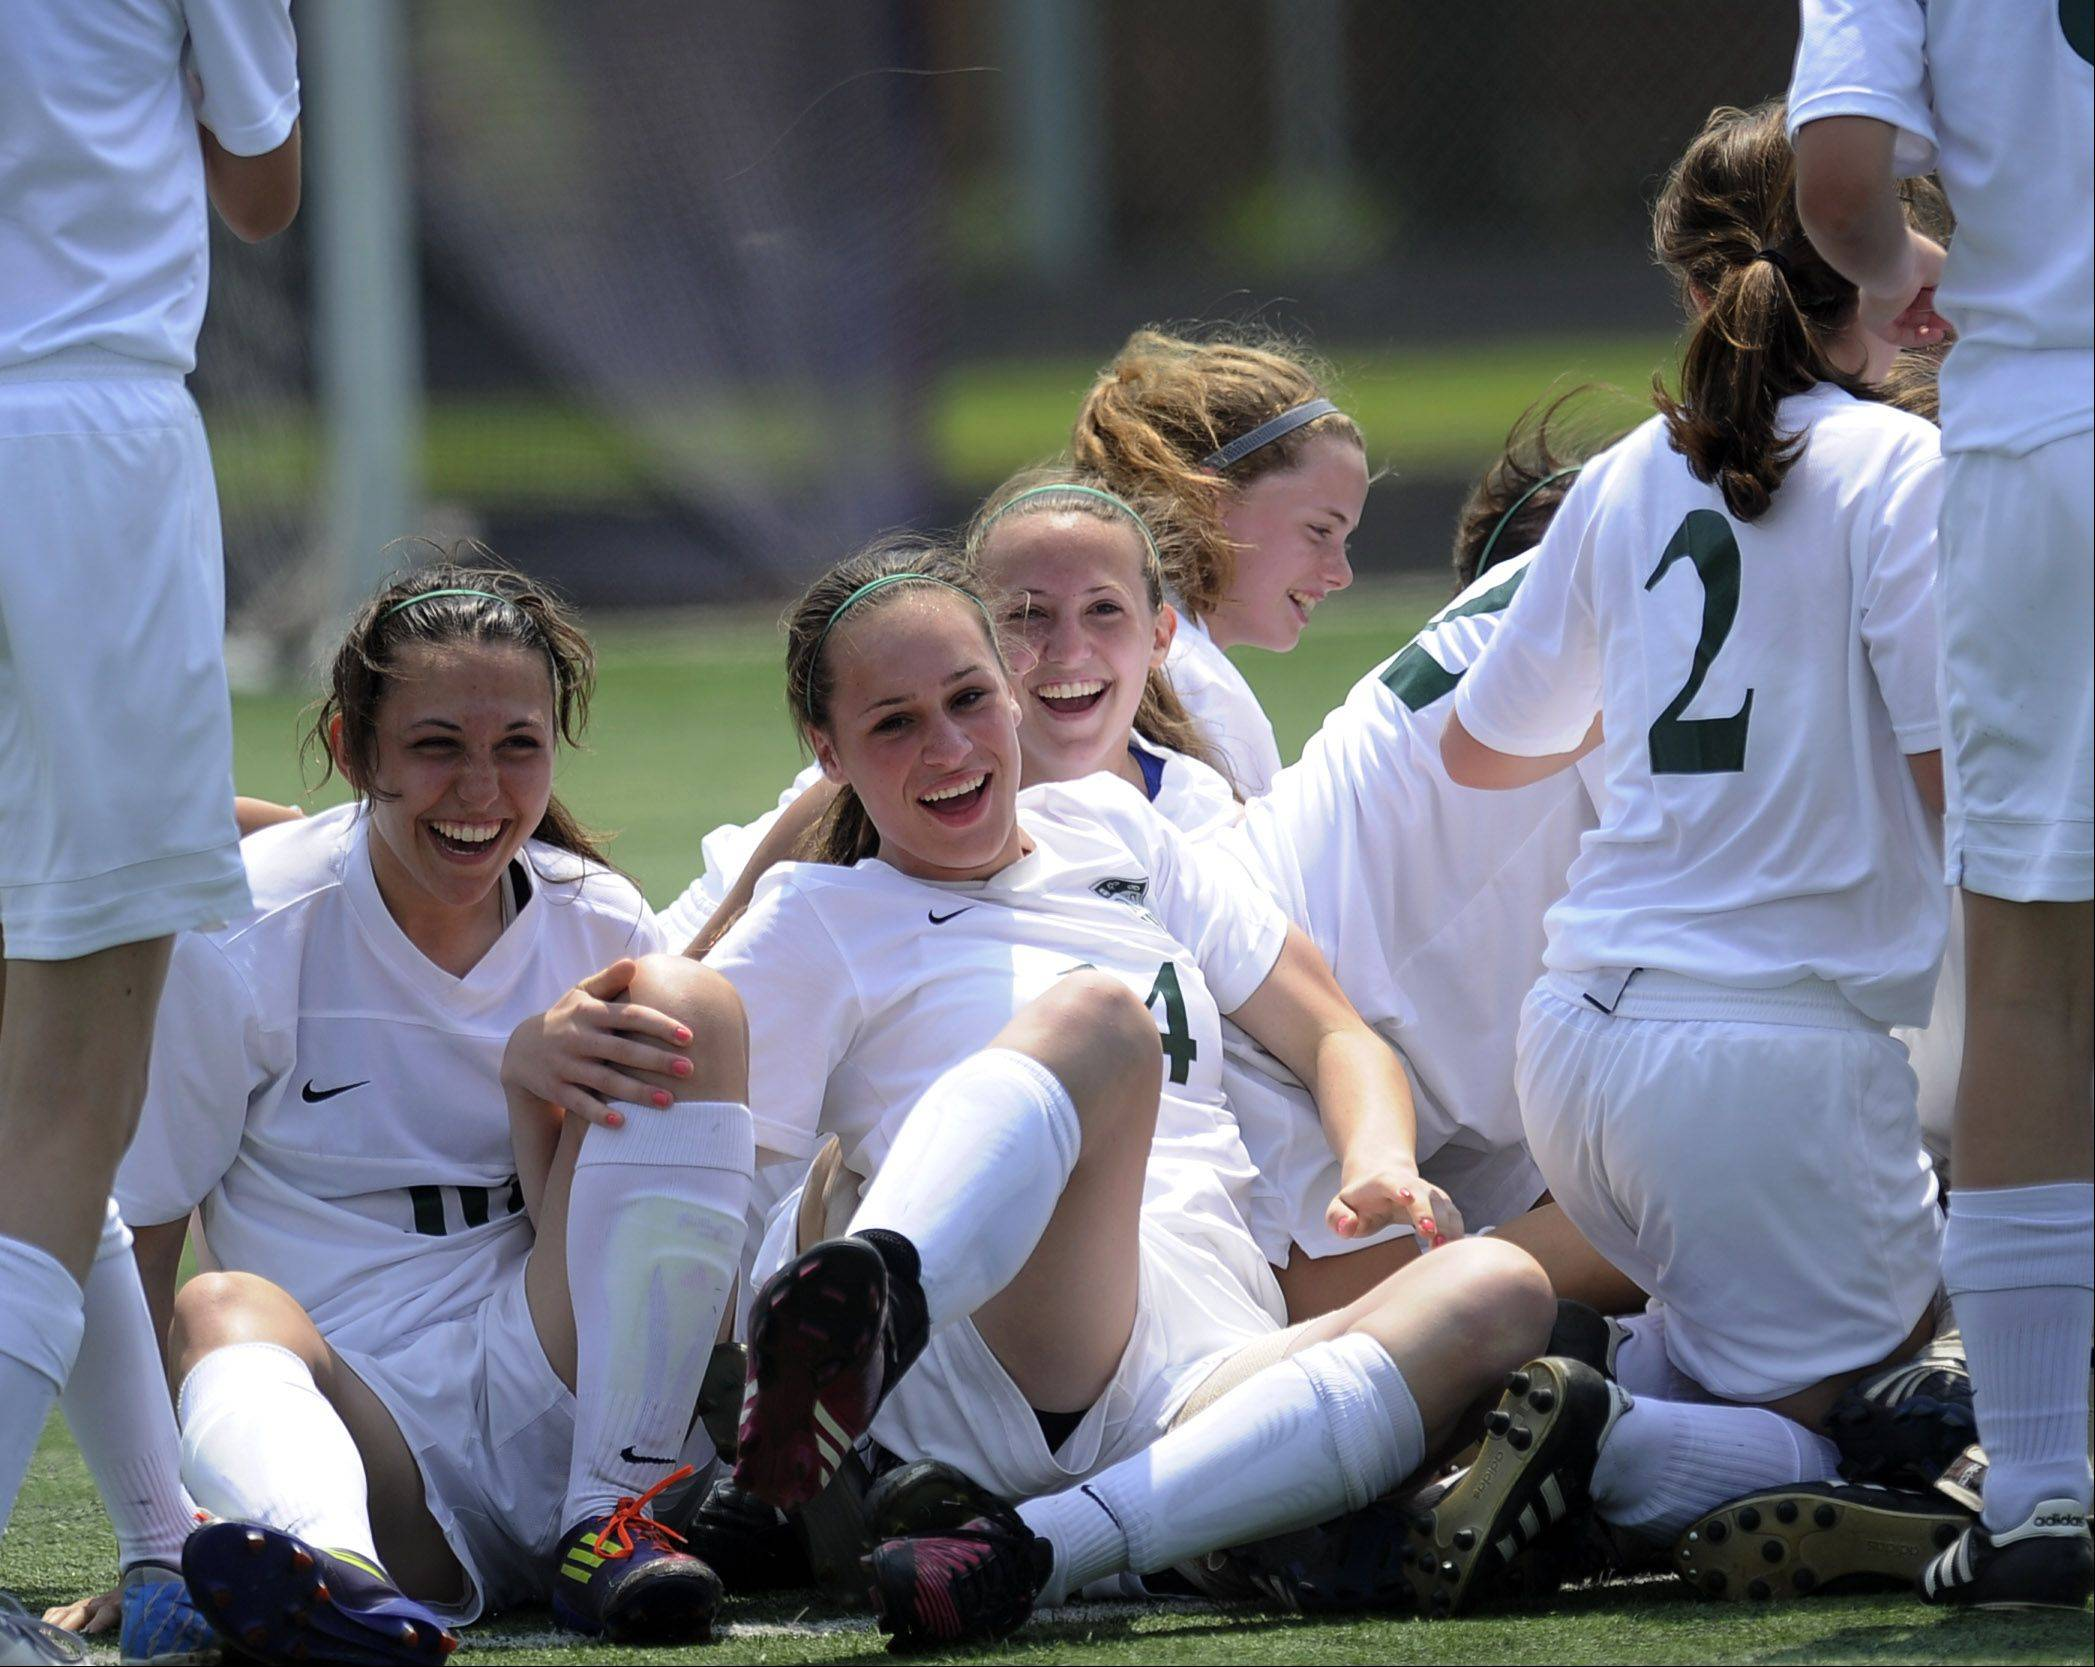 Grayslake Central's Kayley Larson celebrates with teammates after defeating Lakes in a shoot-out during Saturday's Class 2A soccer regional game.